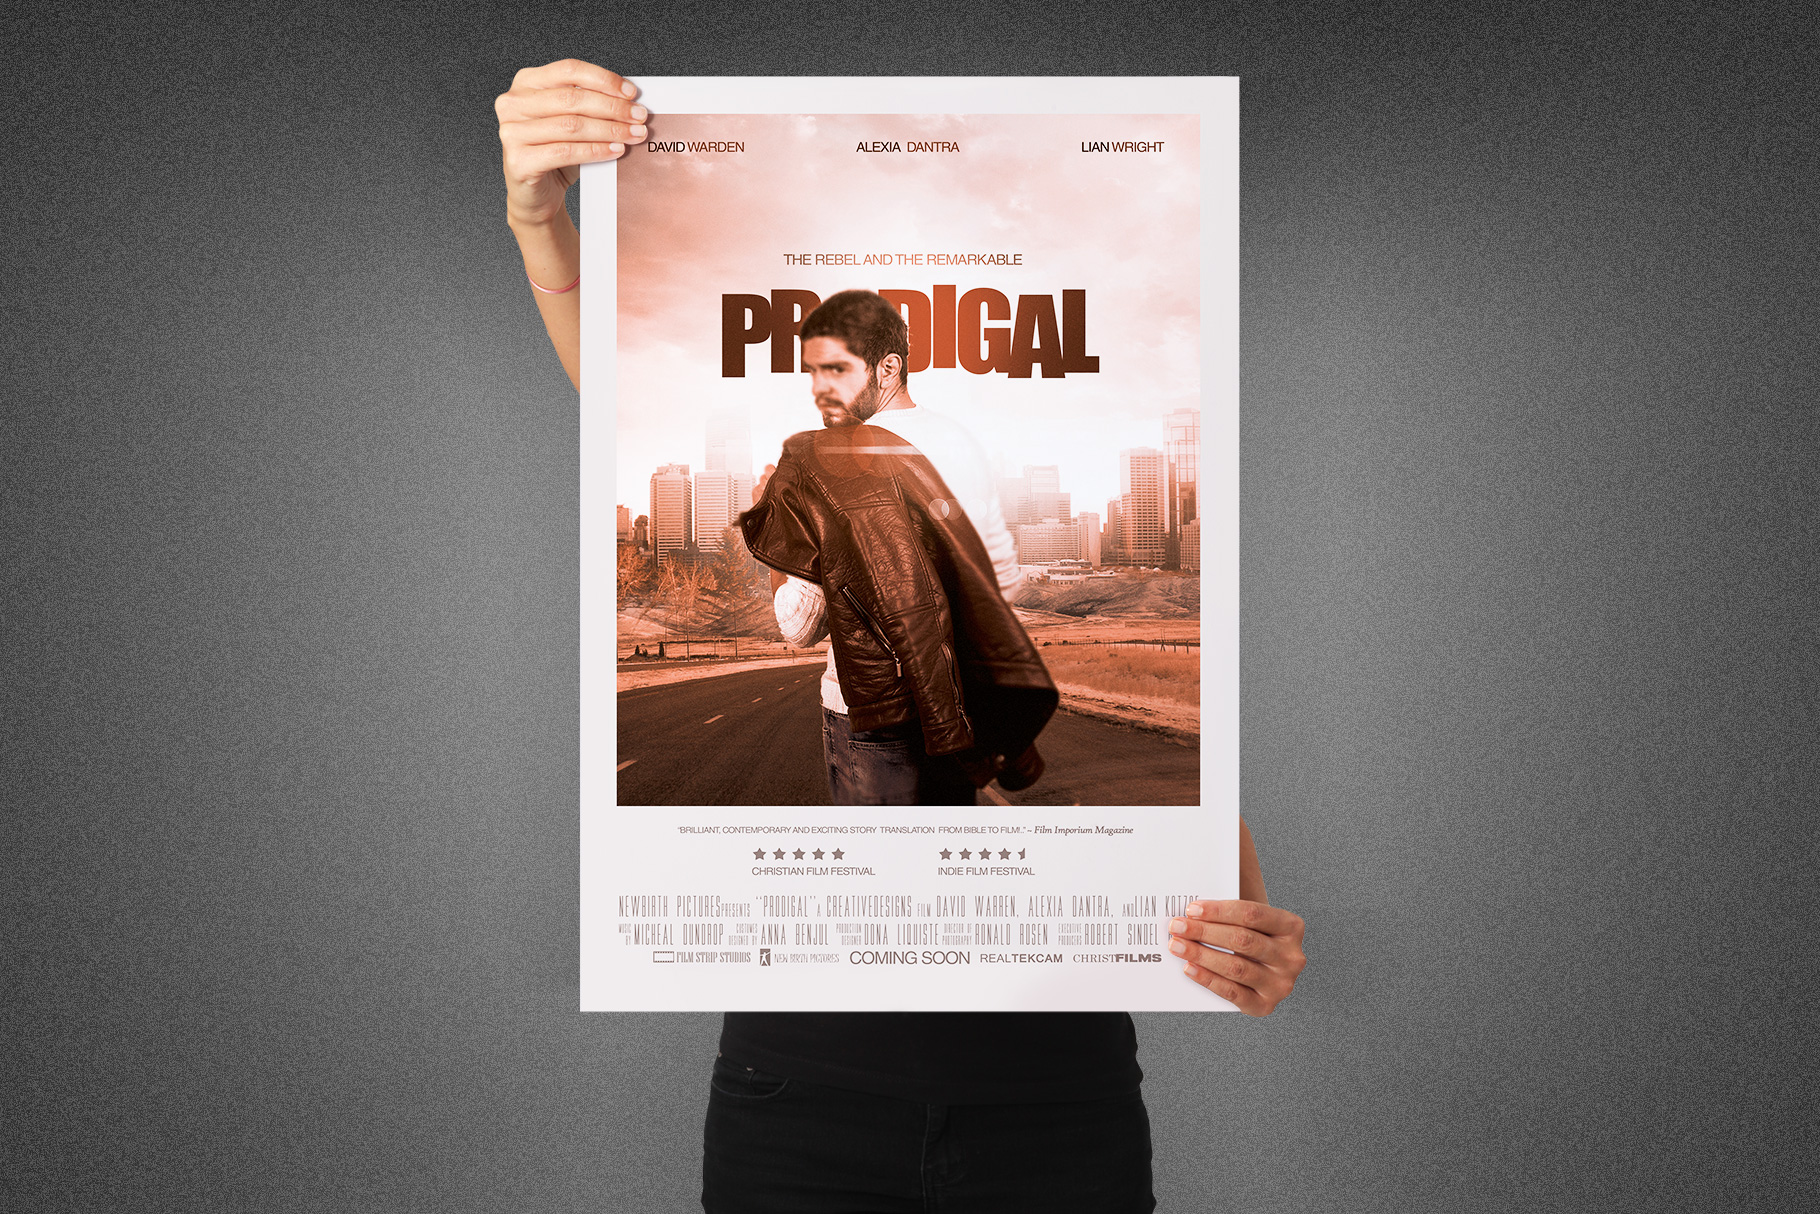 Prodigal Movie Poster Template example image 4